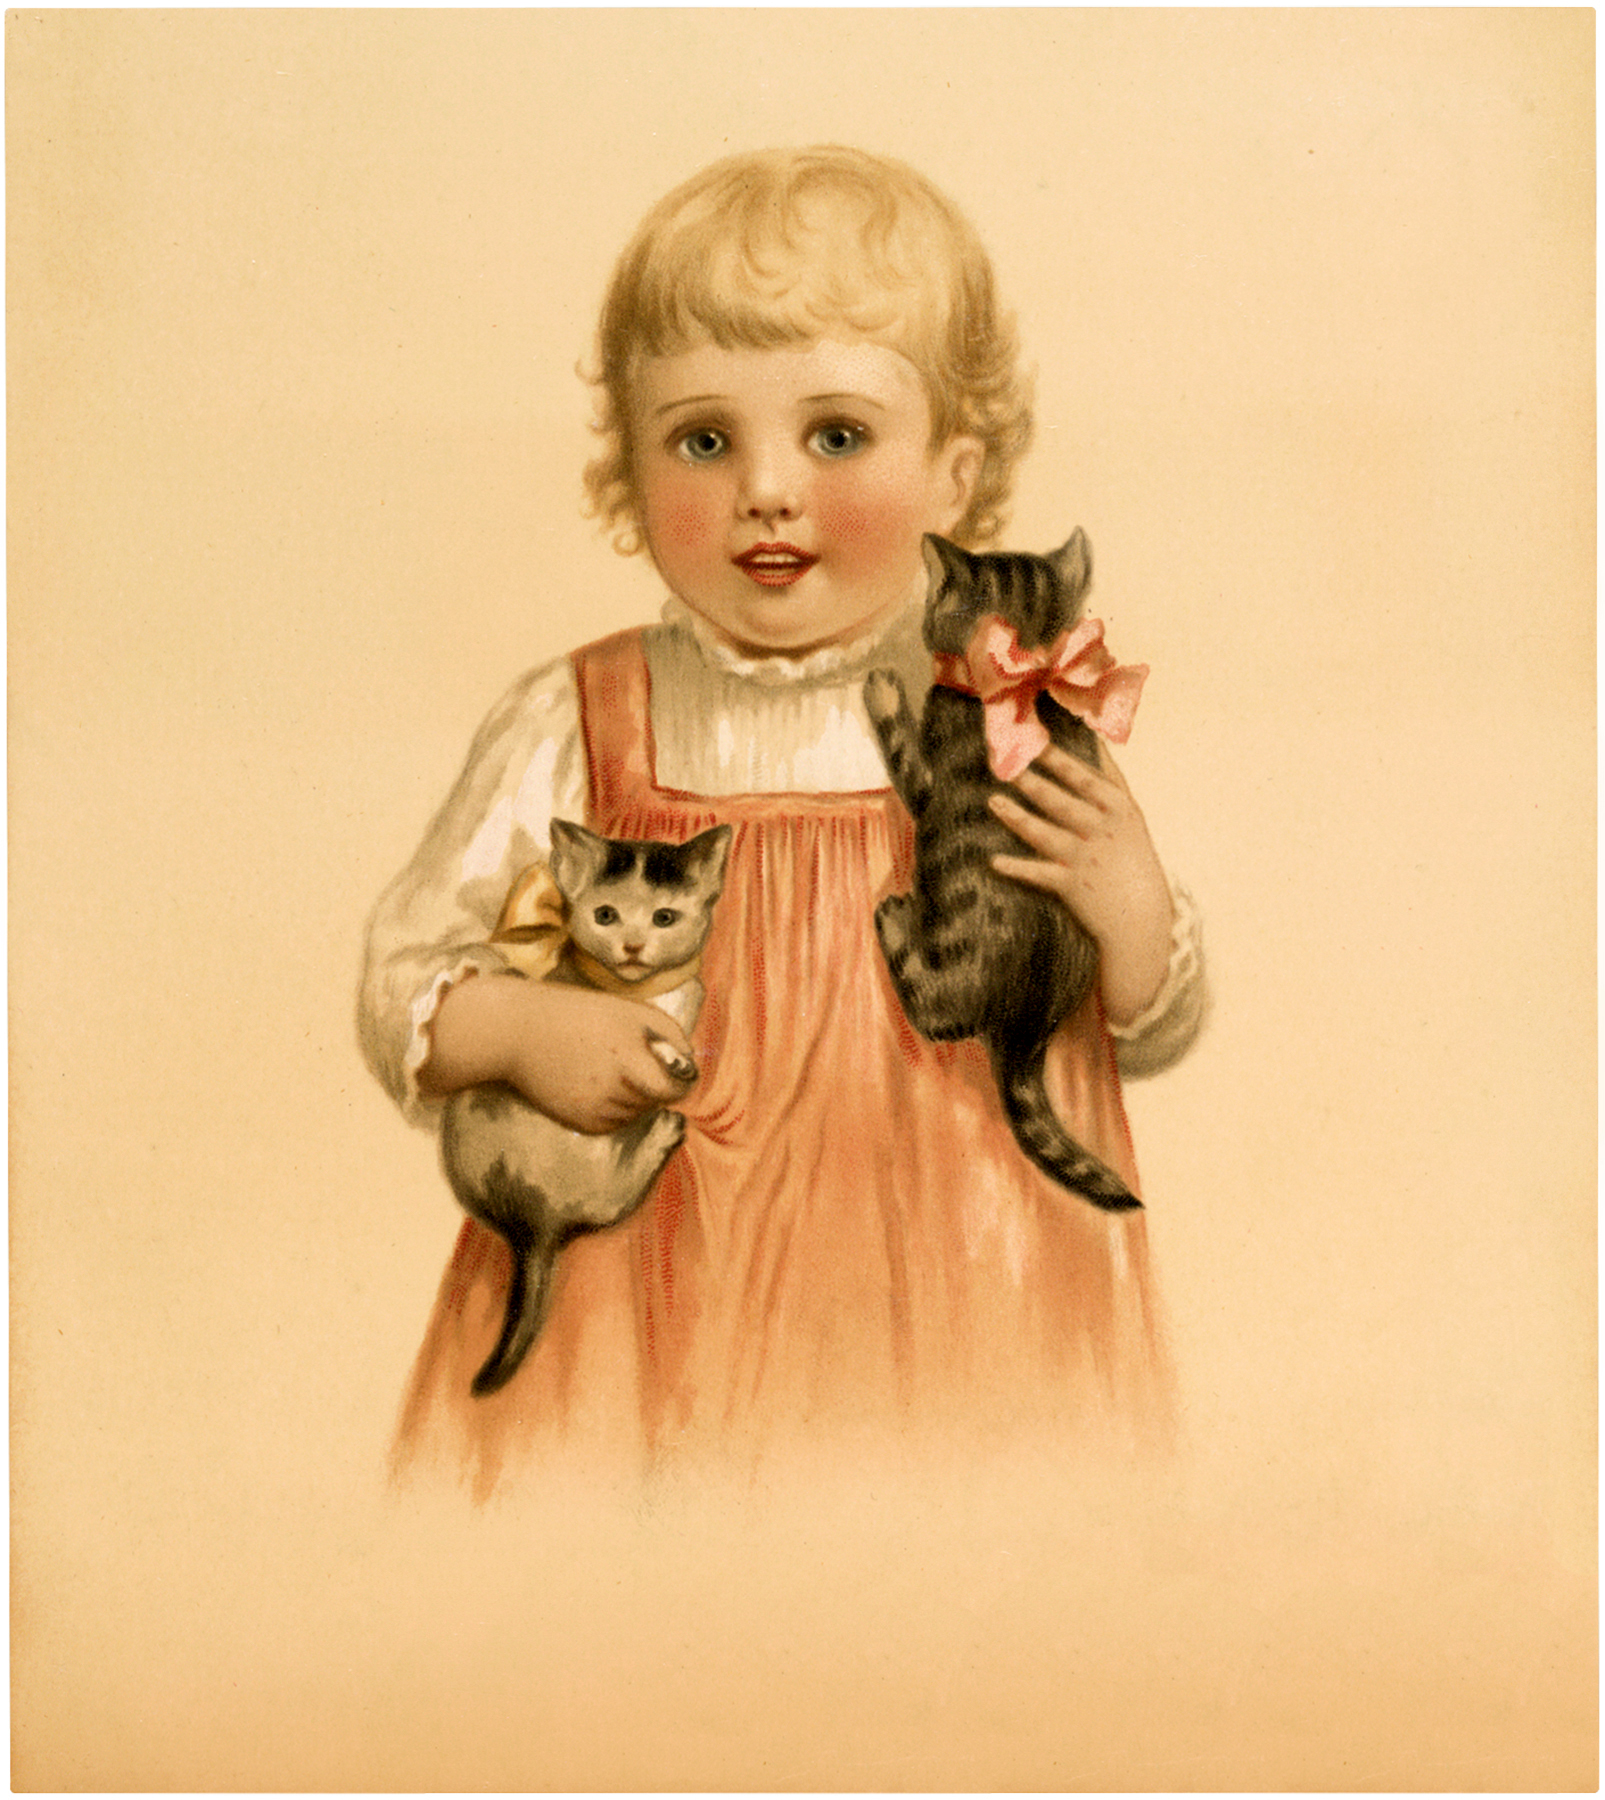 Vintage Girl with Kittens Stock Image